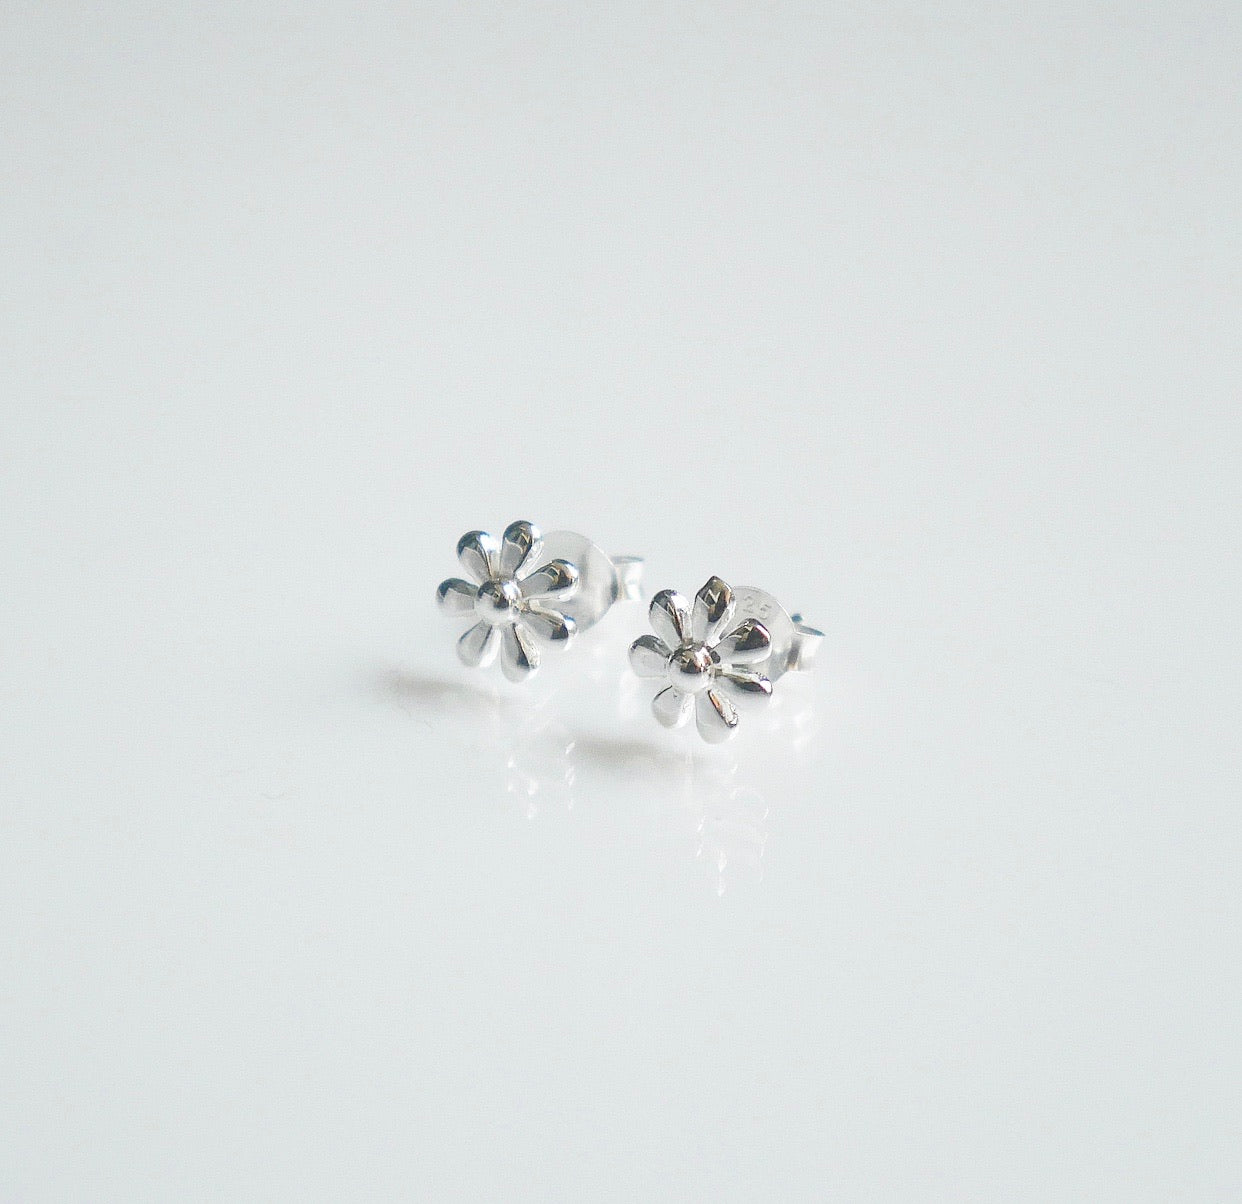 Flower stud earring by KesleyBoutique.com, Girlwith3jobs.com, Flower studs, daisy earrings in sterling silver, sterling silver stud flower earrings by Kesley